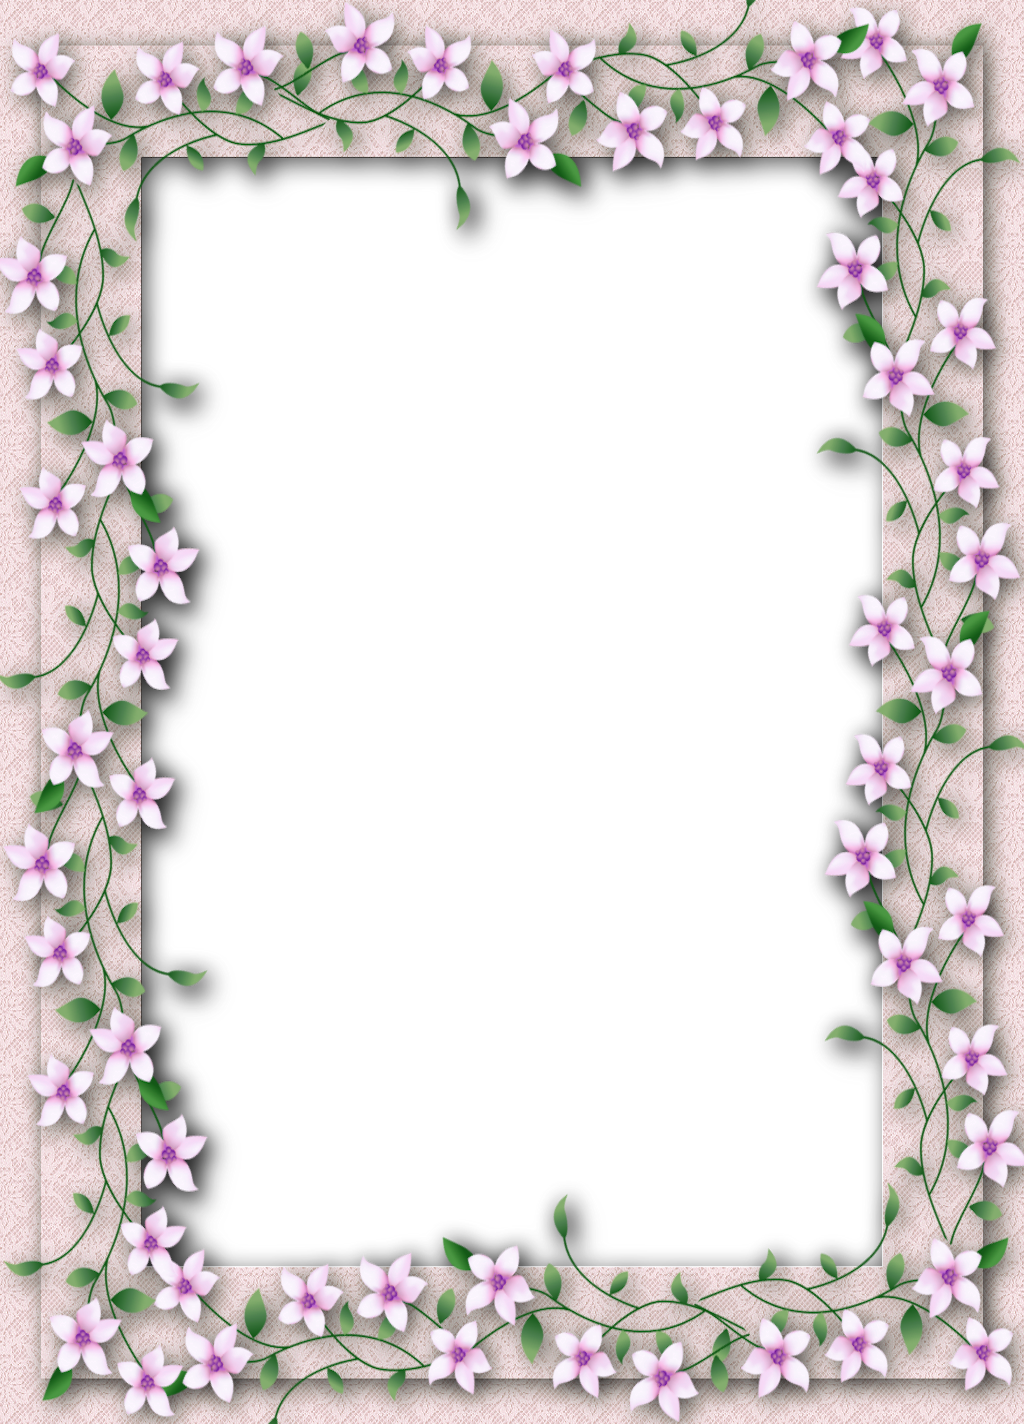 Transparent photo frames png. Pin by marcia masters